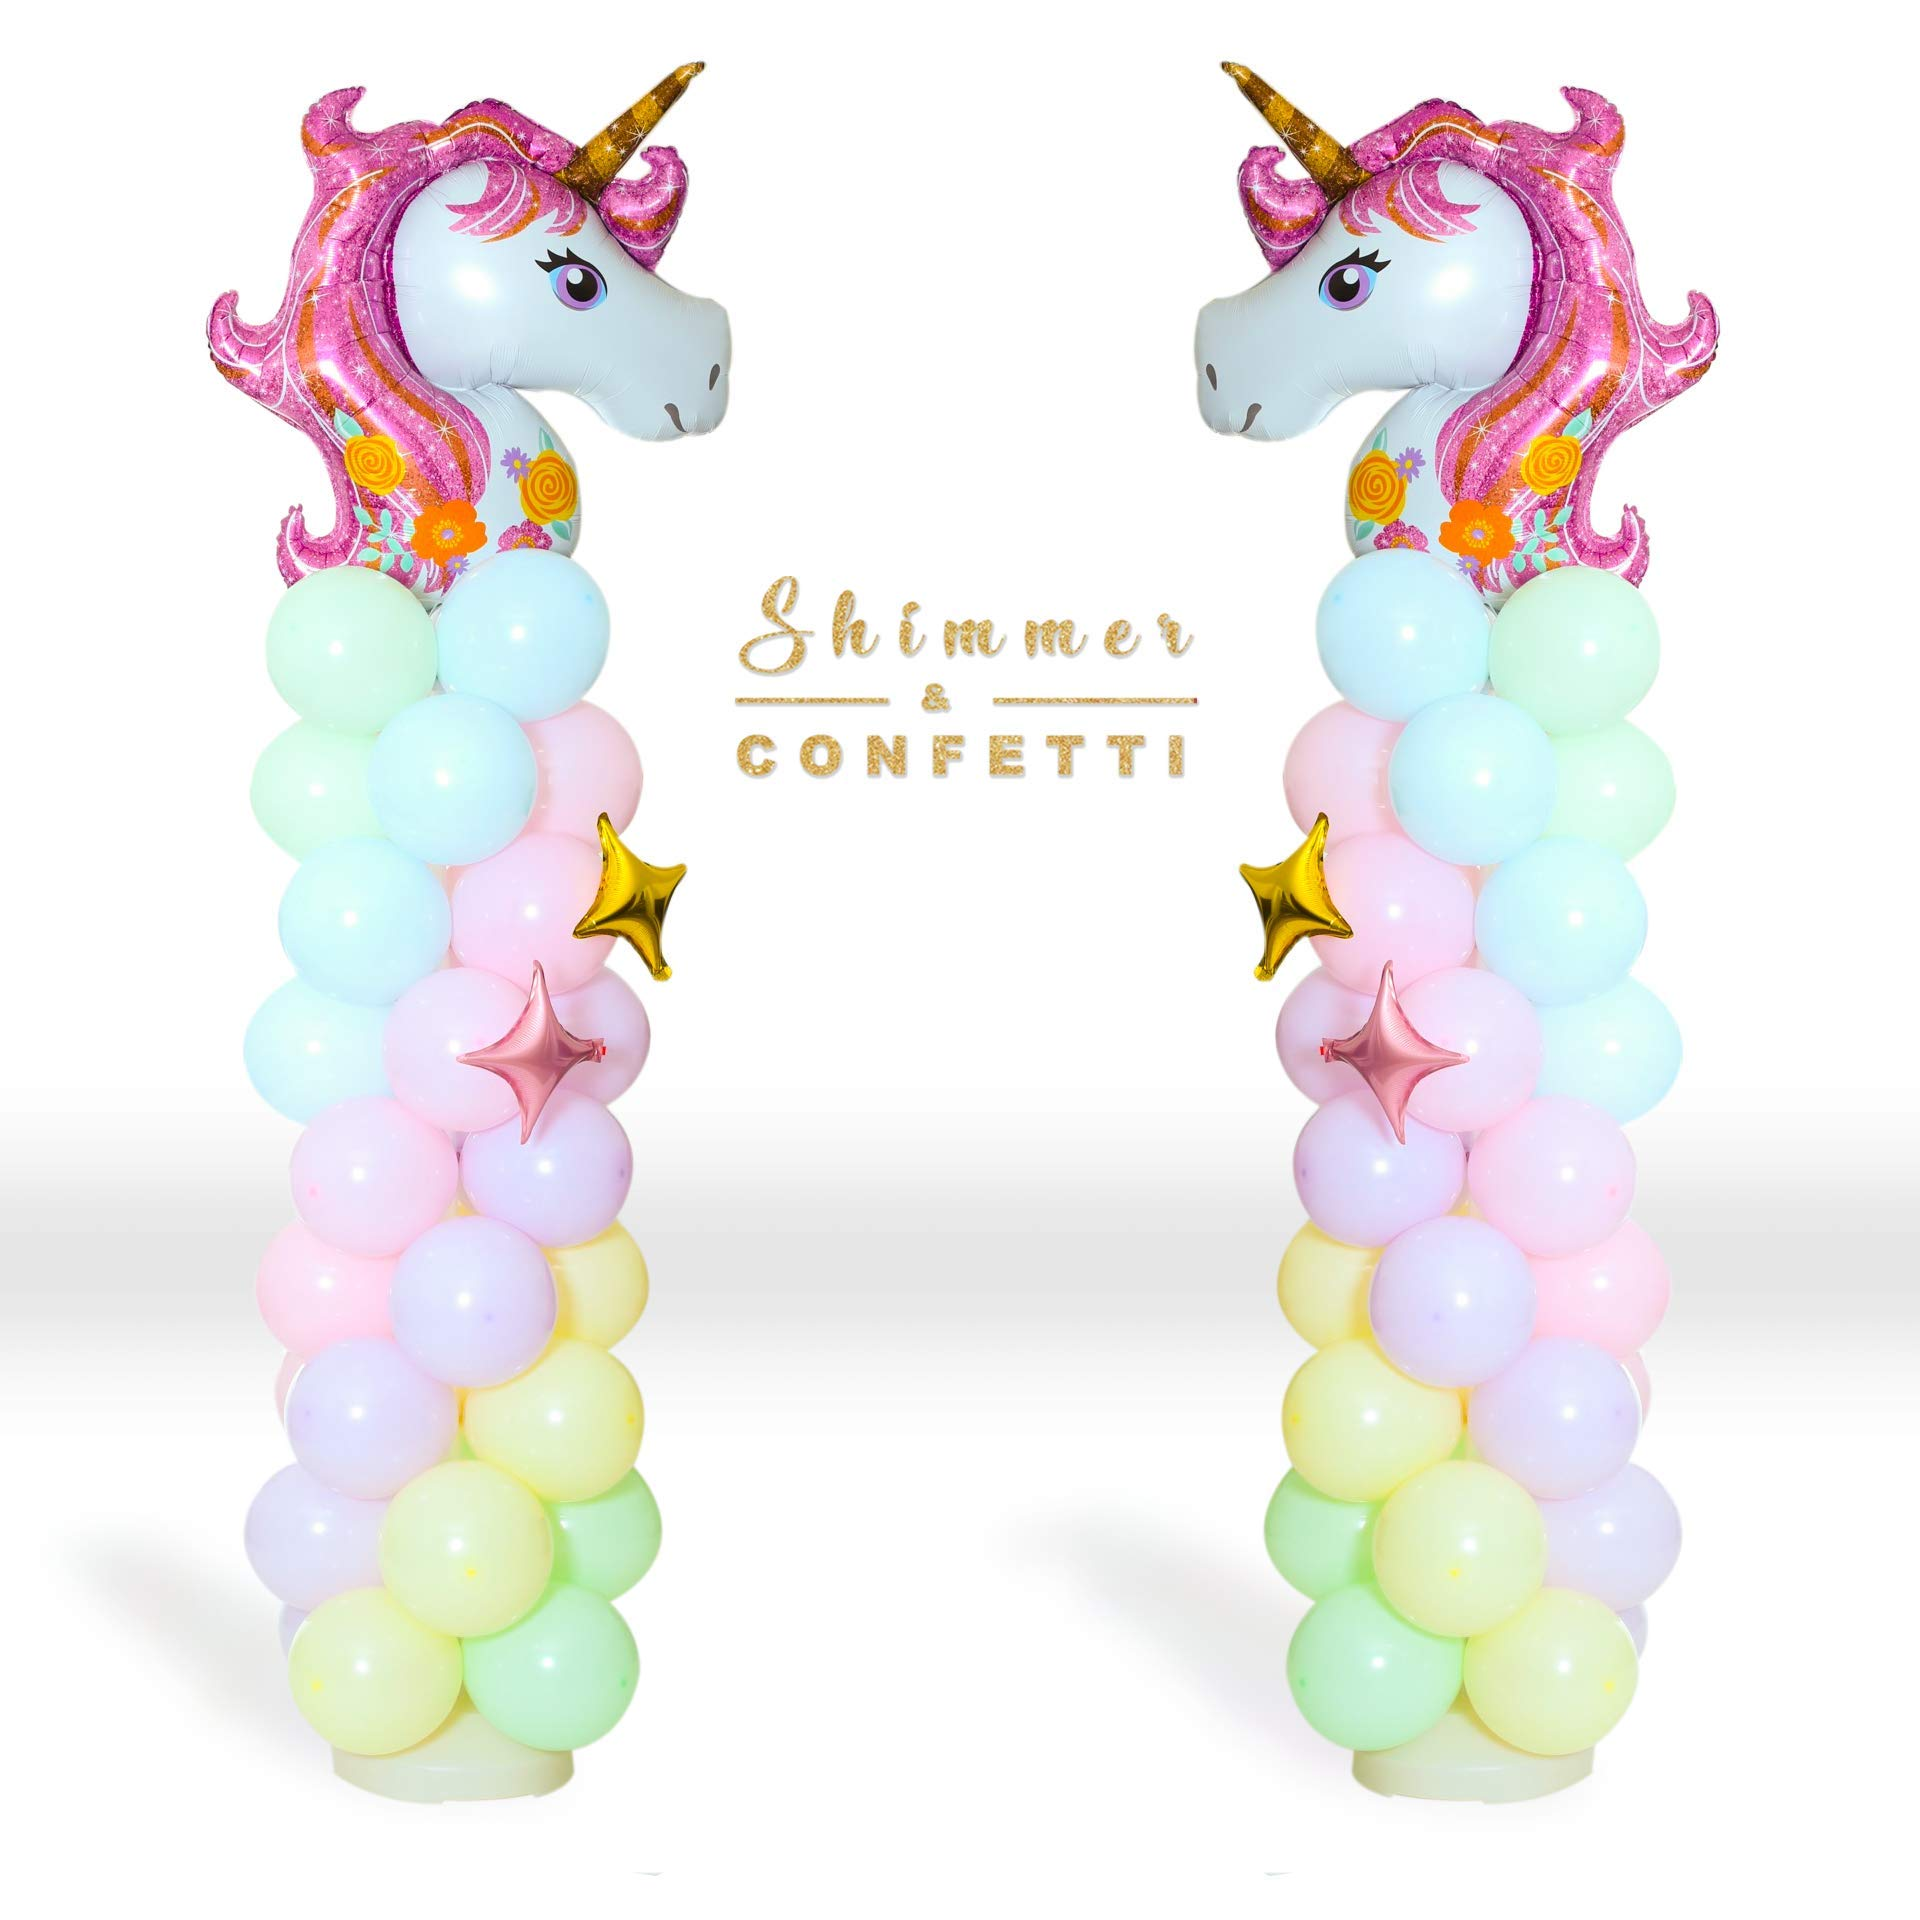 Shimmer and Confetti 2 Columns XL Sturdy Base, Poles and Unicorn Balloons Size 5 Feet Tall, 11-pound Water-Fillable Base, 2 Giant Unicorn Balloons, 90 Pastel Balloons, Stars, Pump, Glue Dots, Ribbons